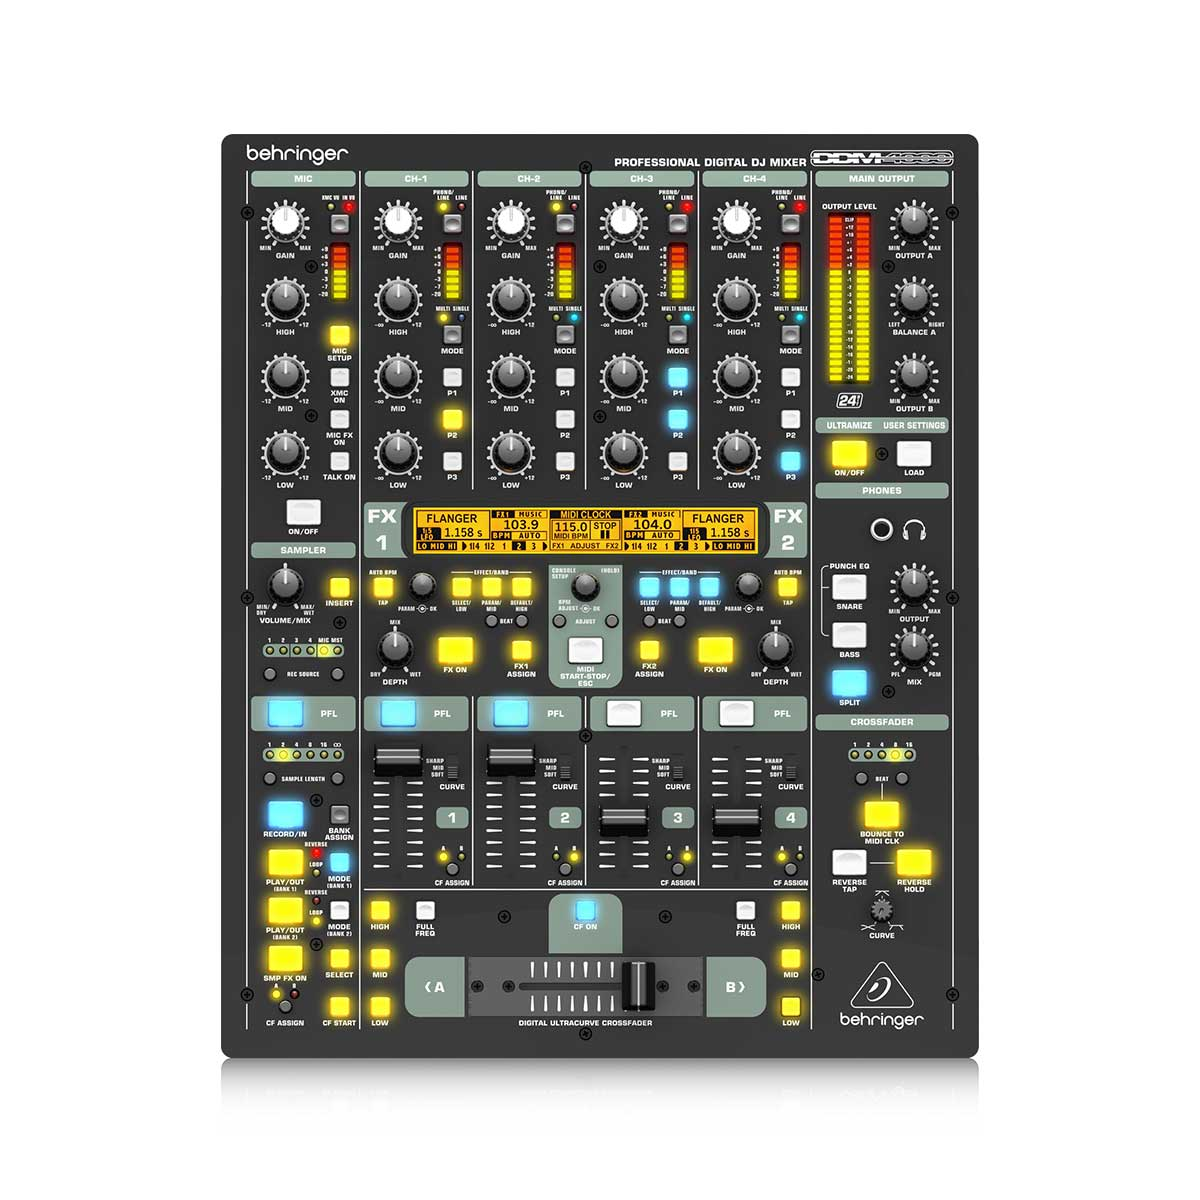 Behringer DDM4000 5-Channel Digital DJ Mixer with Sampler, 4 FX Sections, Dual BPM Counters and MIDI